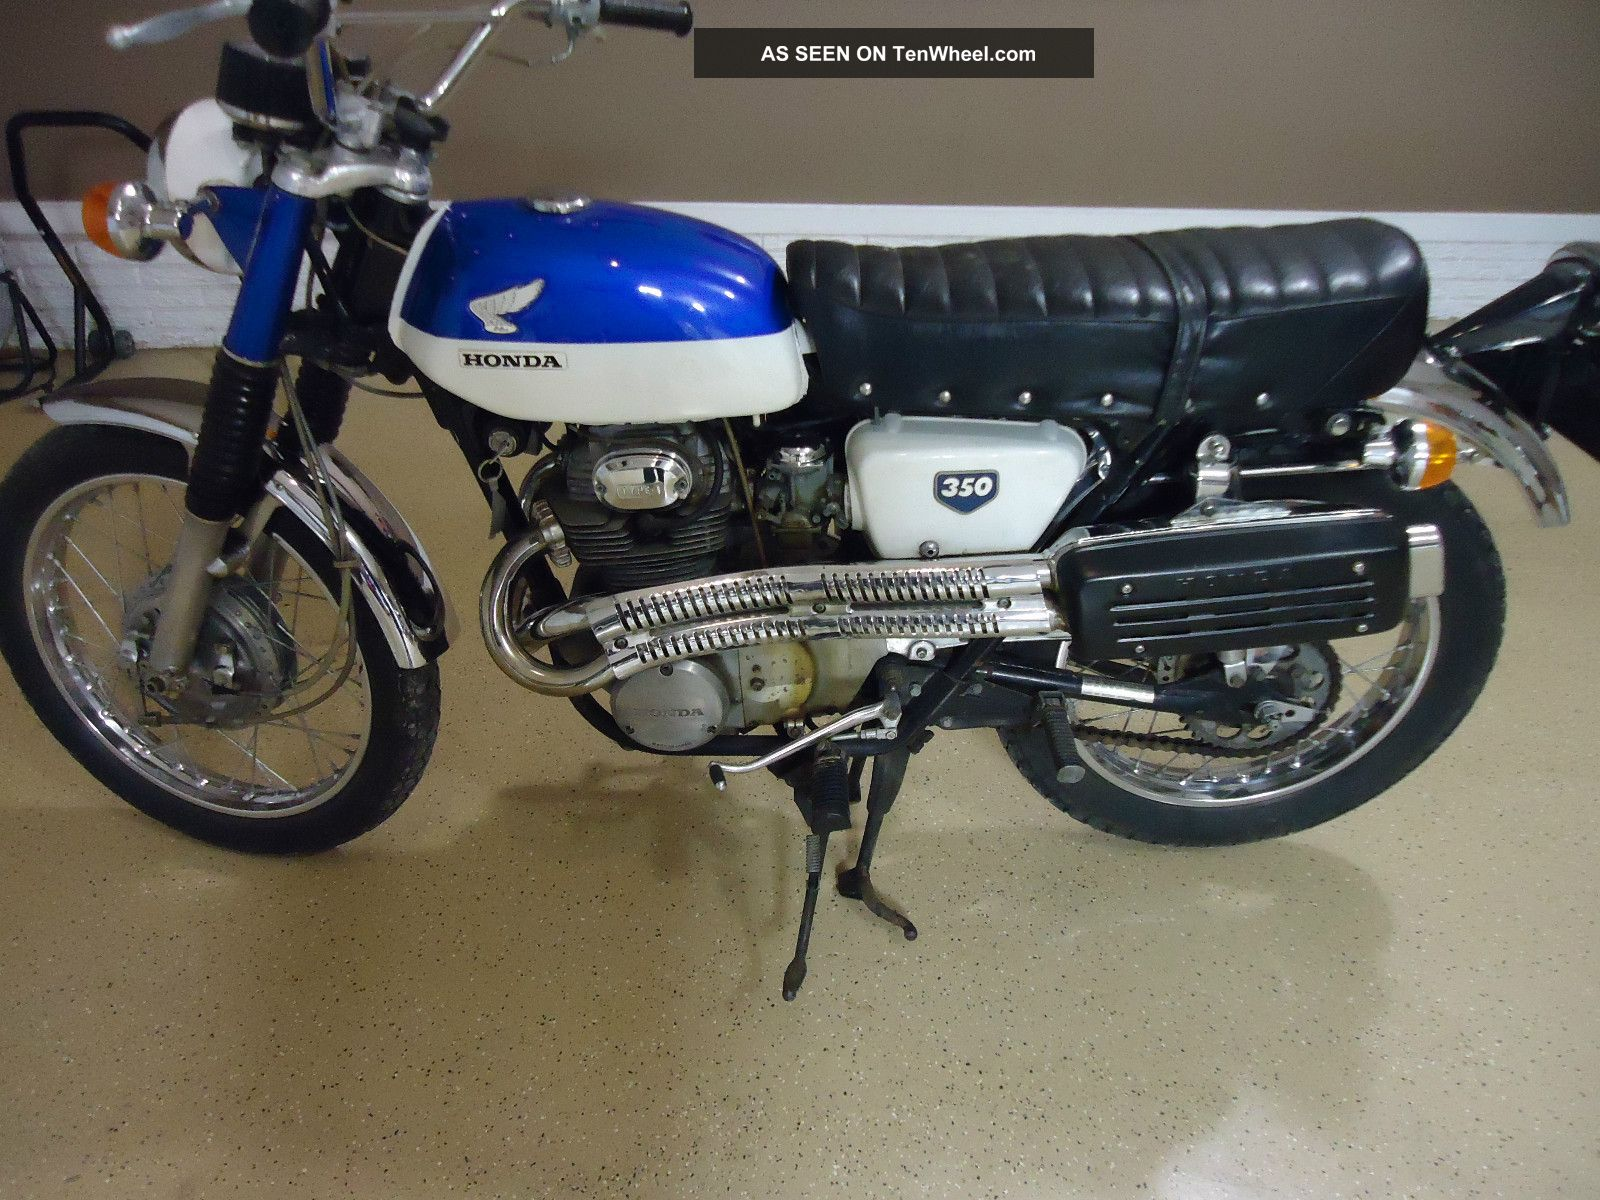 1968 Honda Cl 350 CL photo